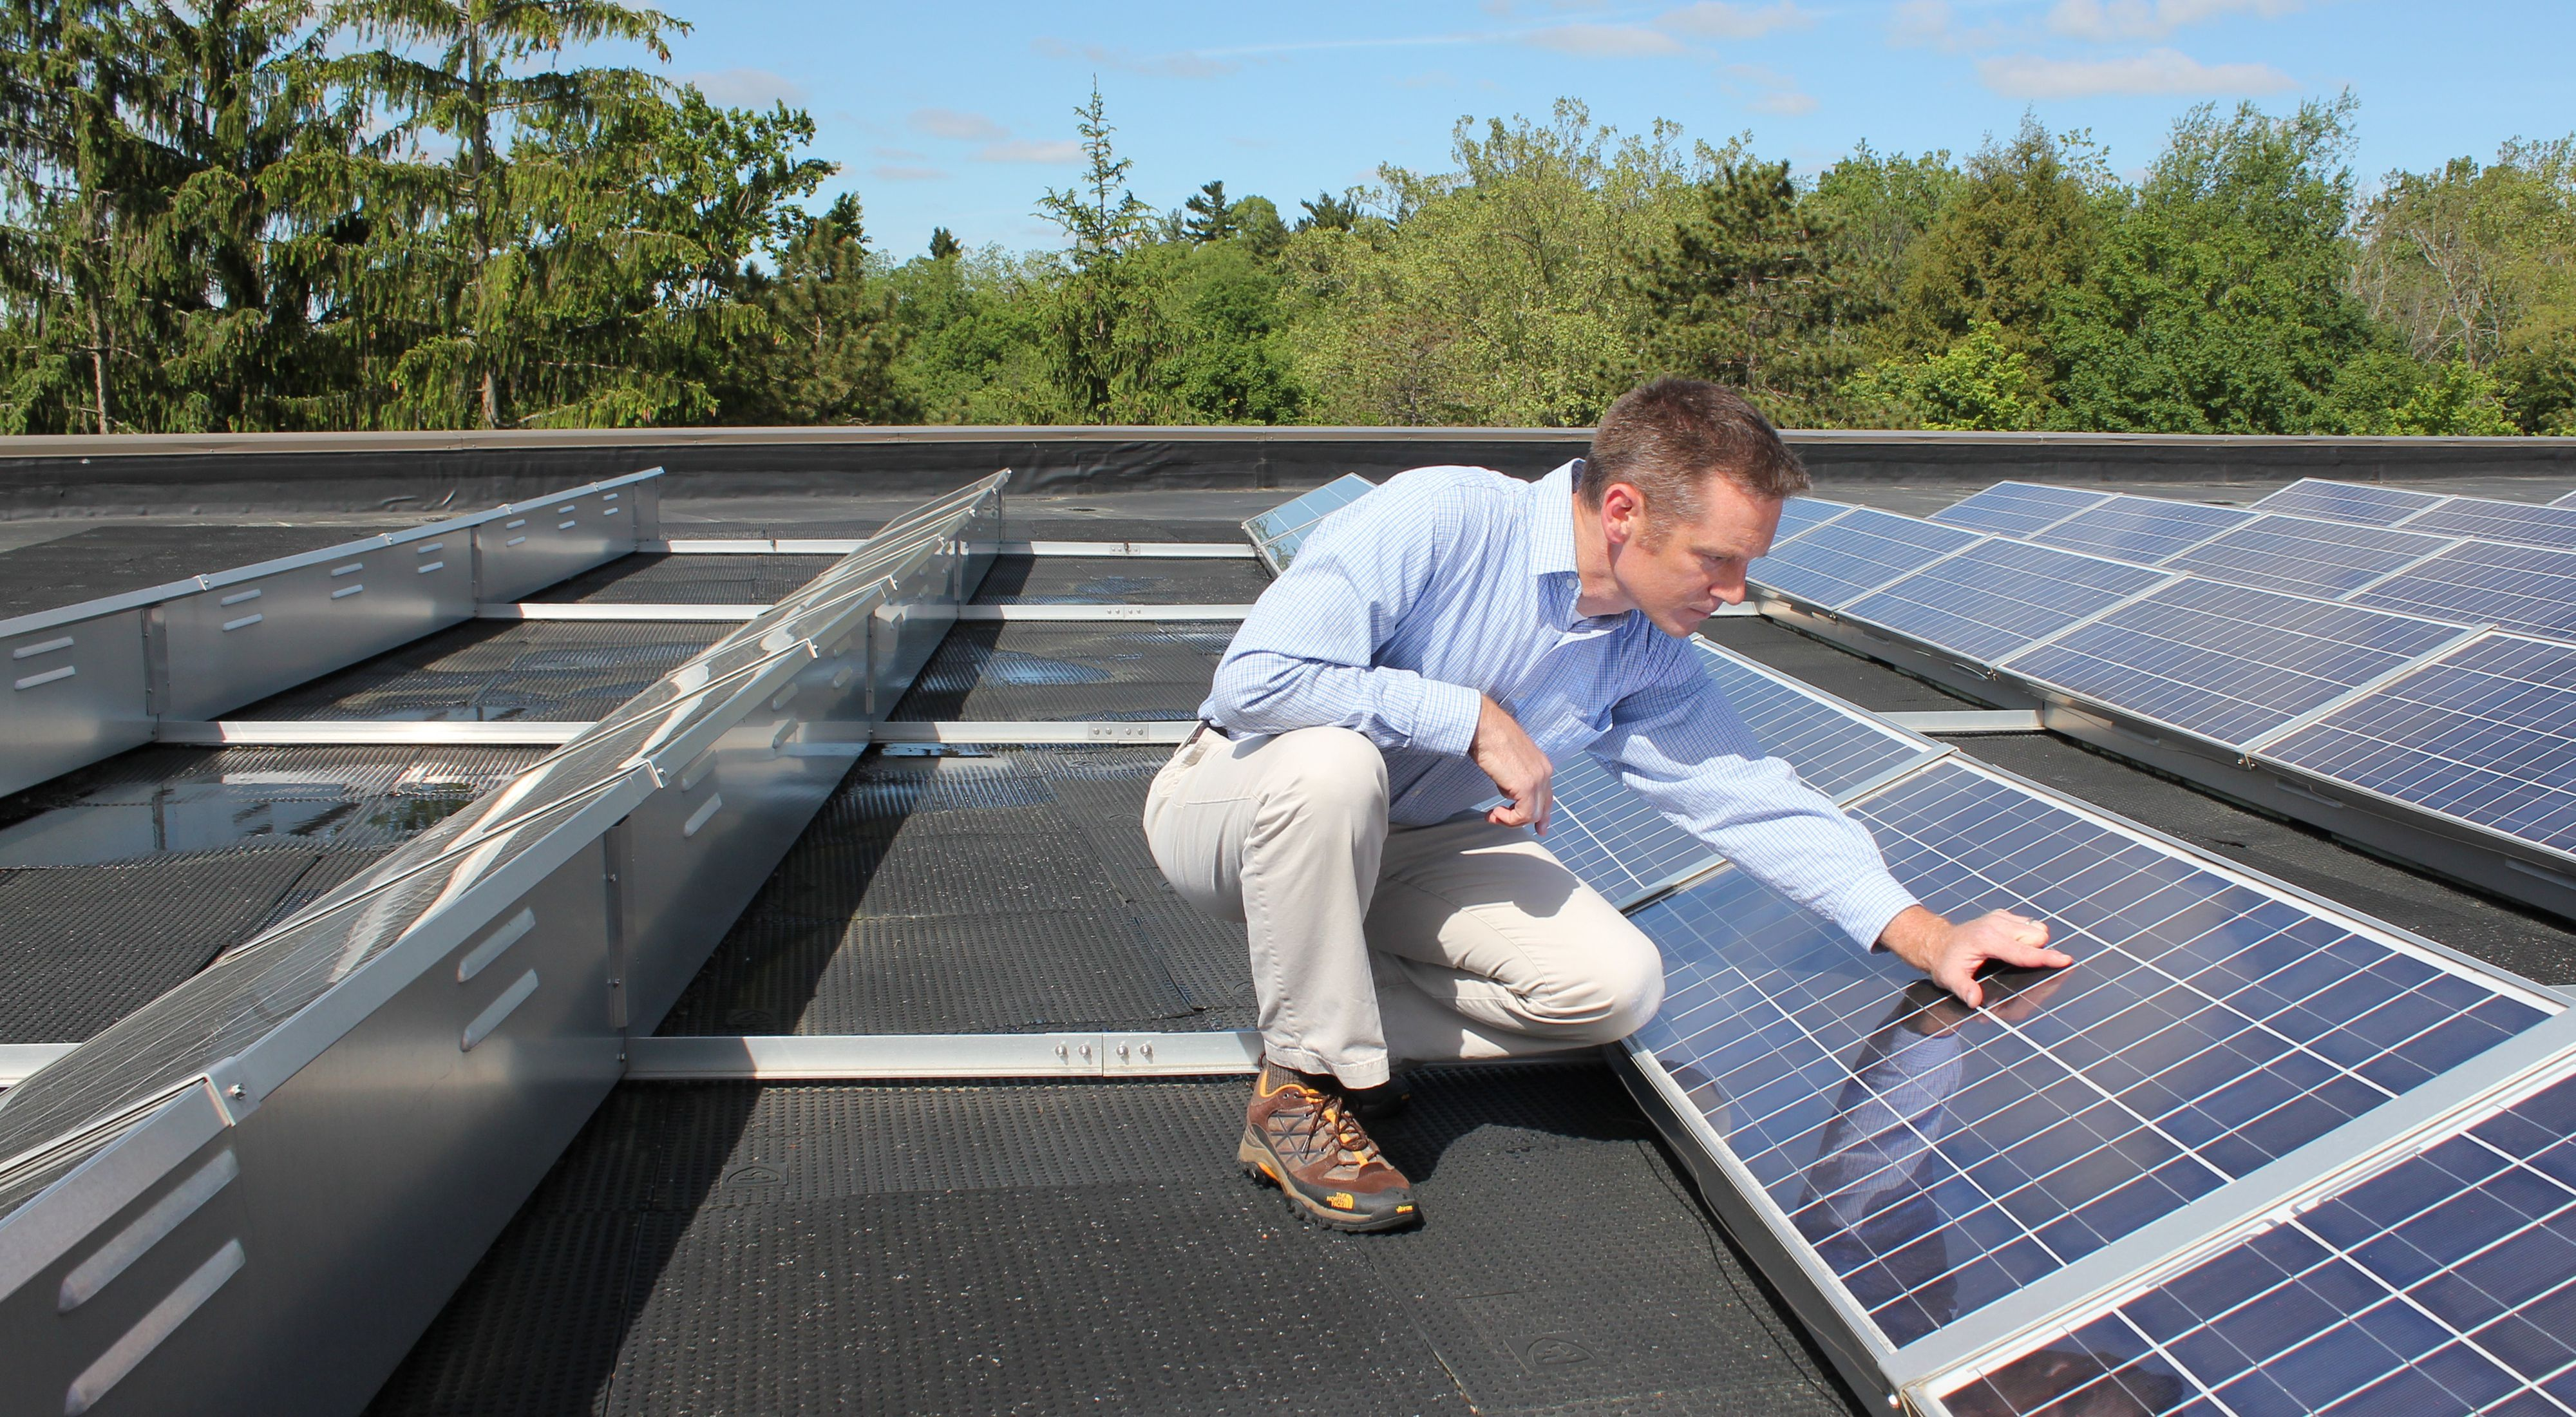 Solar panels at Denison University